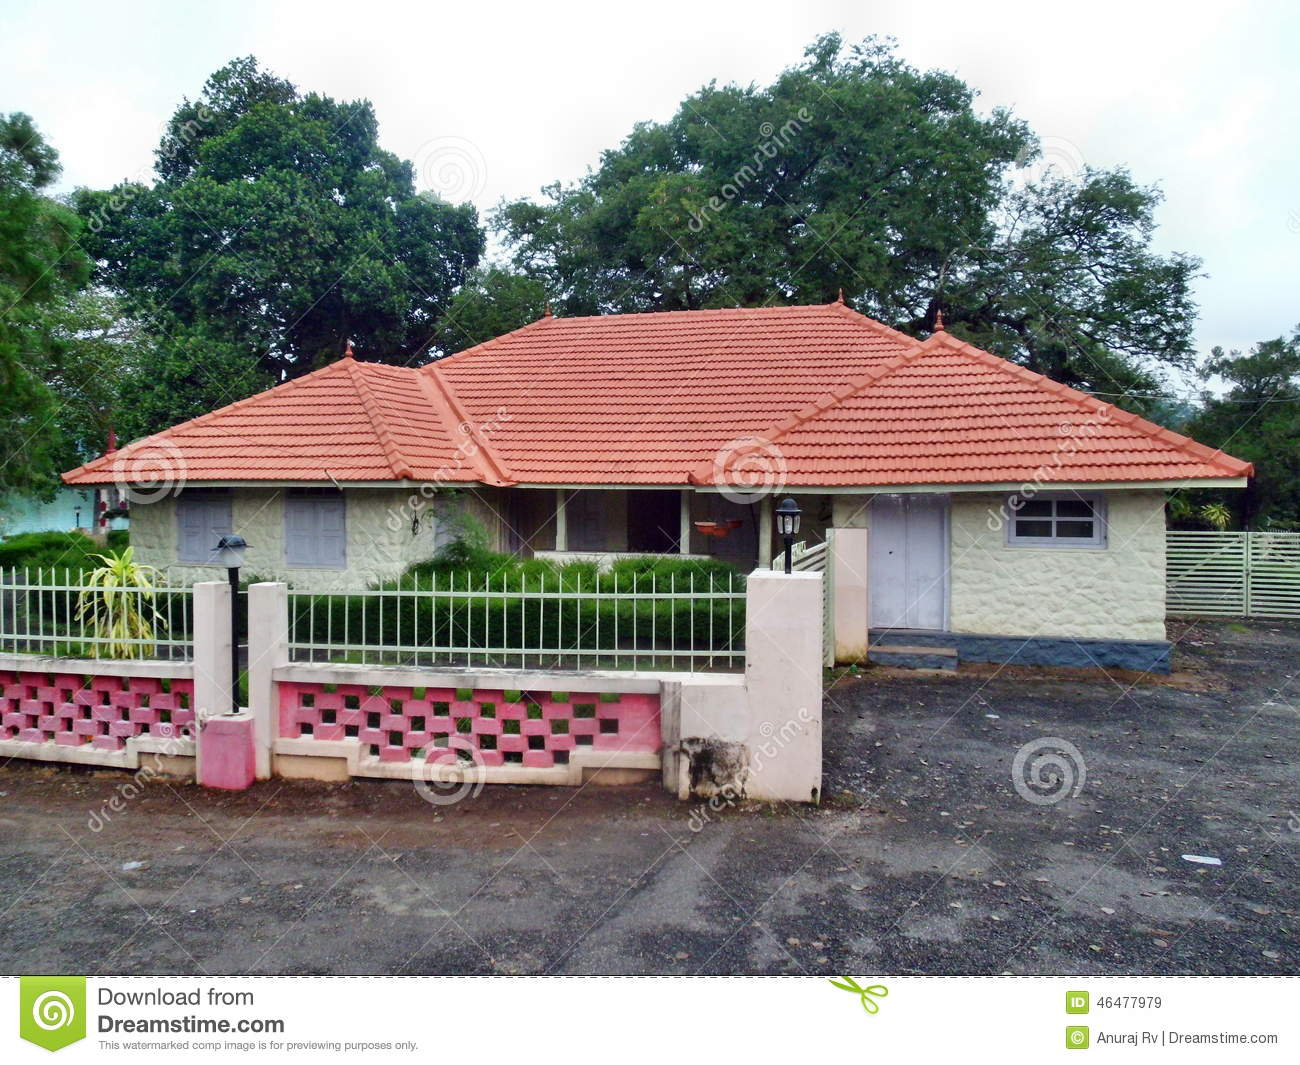 Kerala model house stock image image of building road for Traditional house plans in india